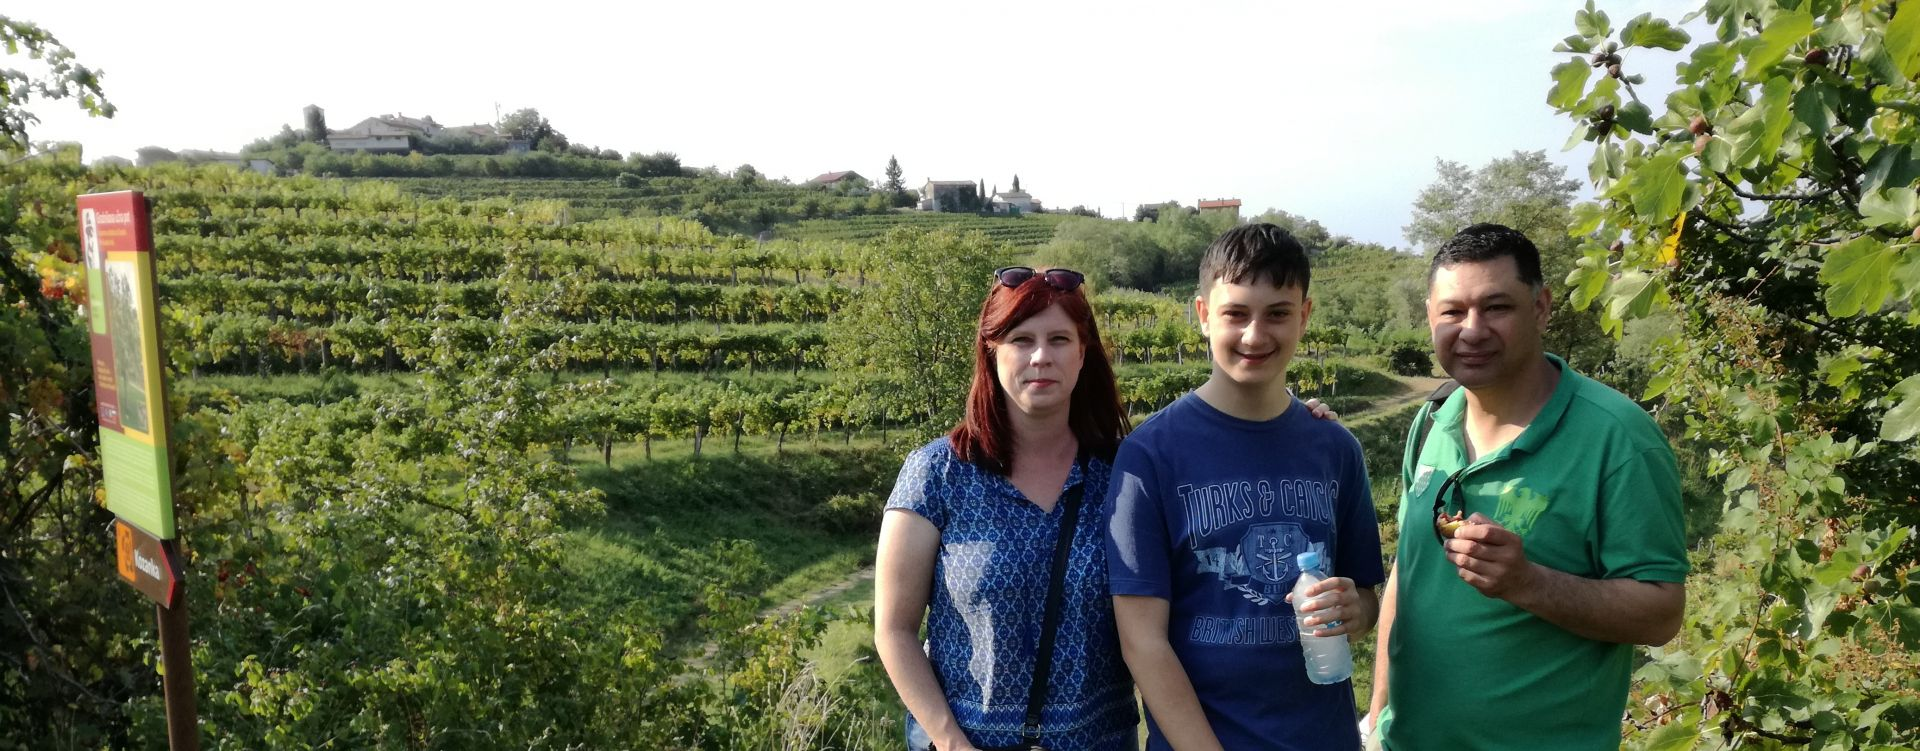 walking-wine-tour-brda